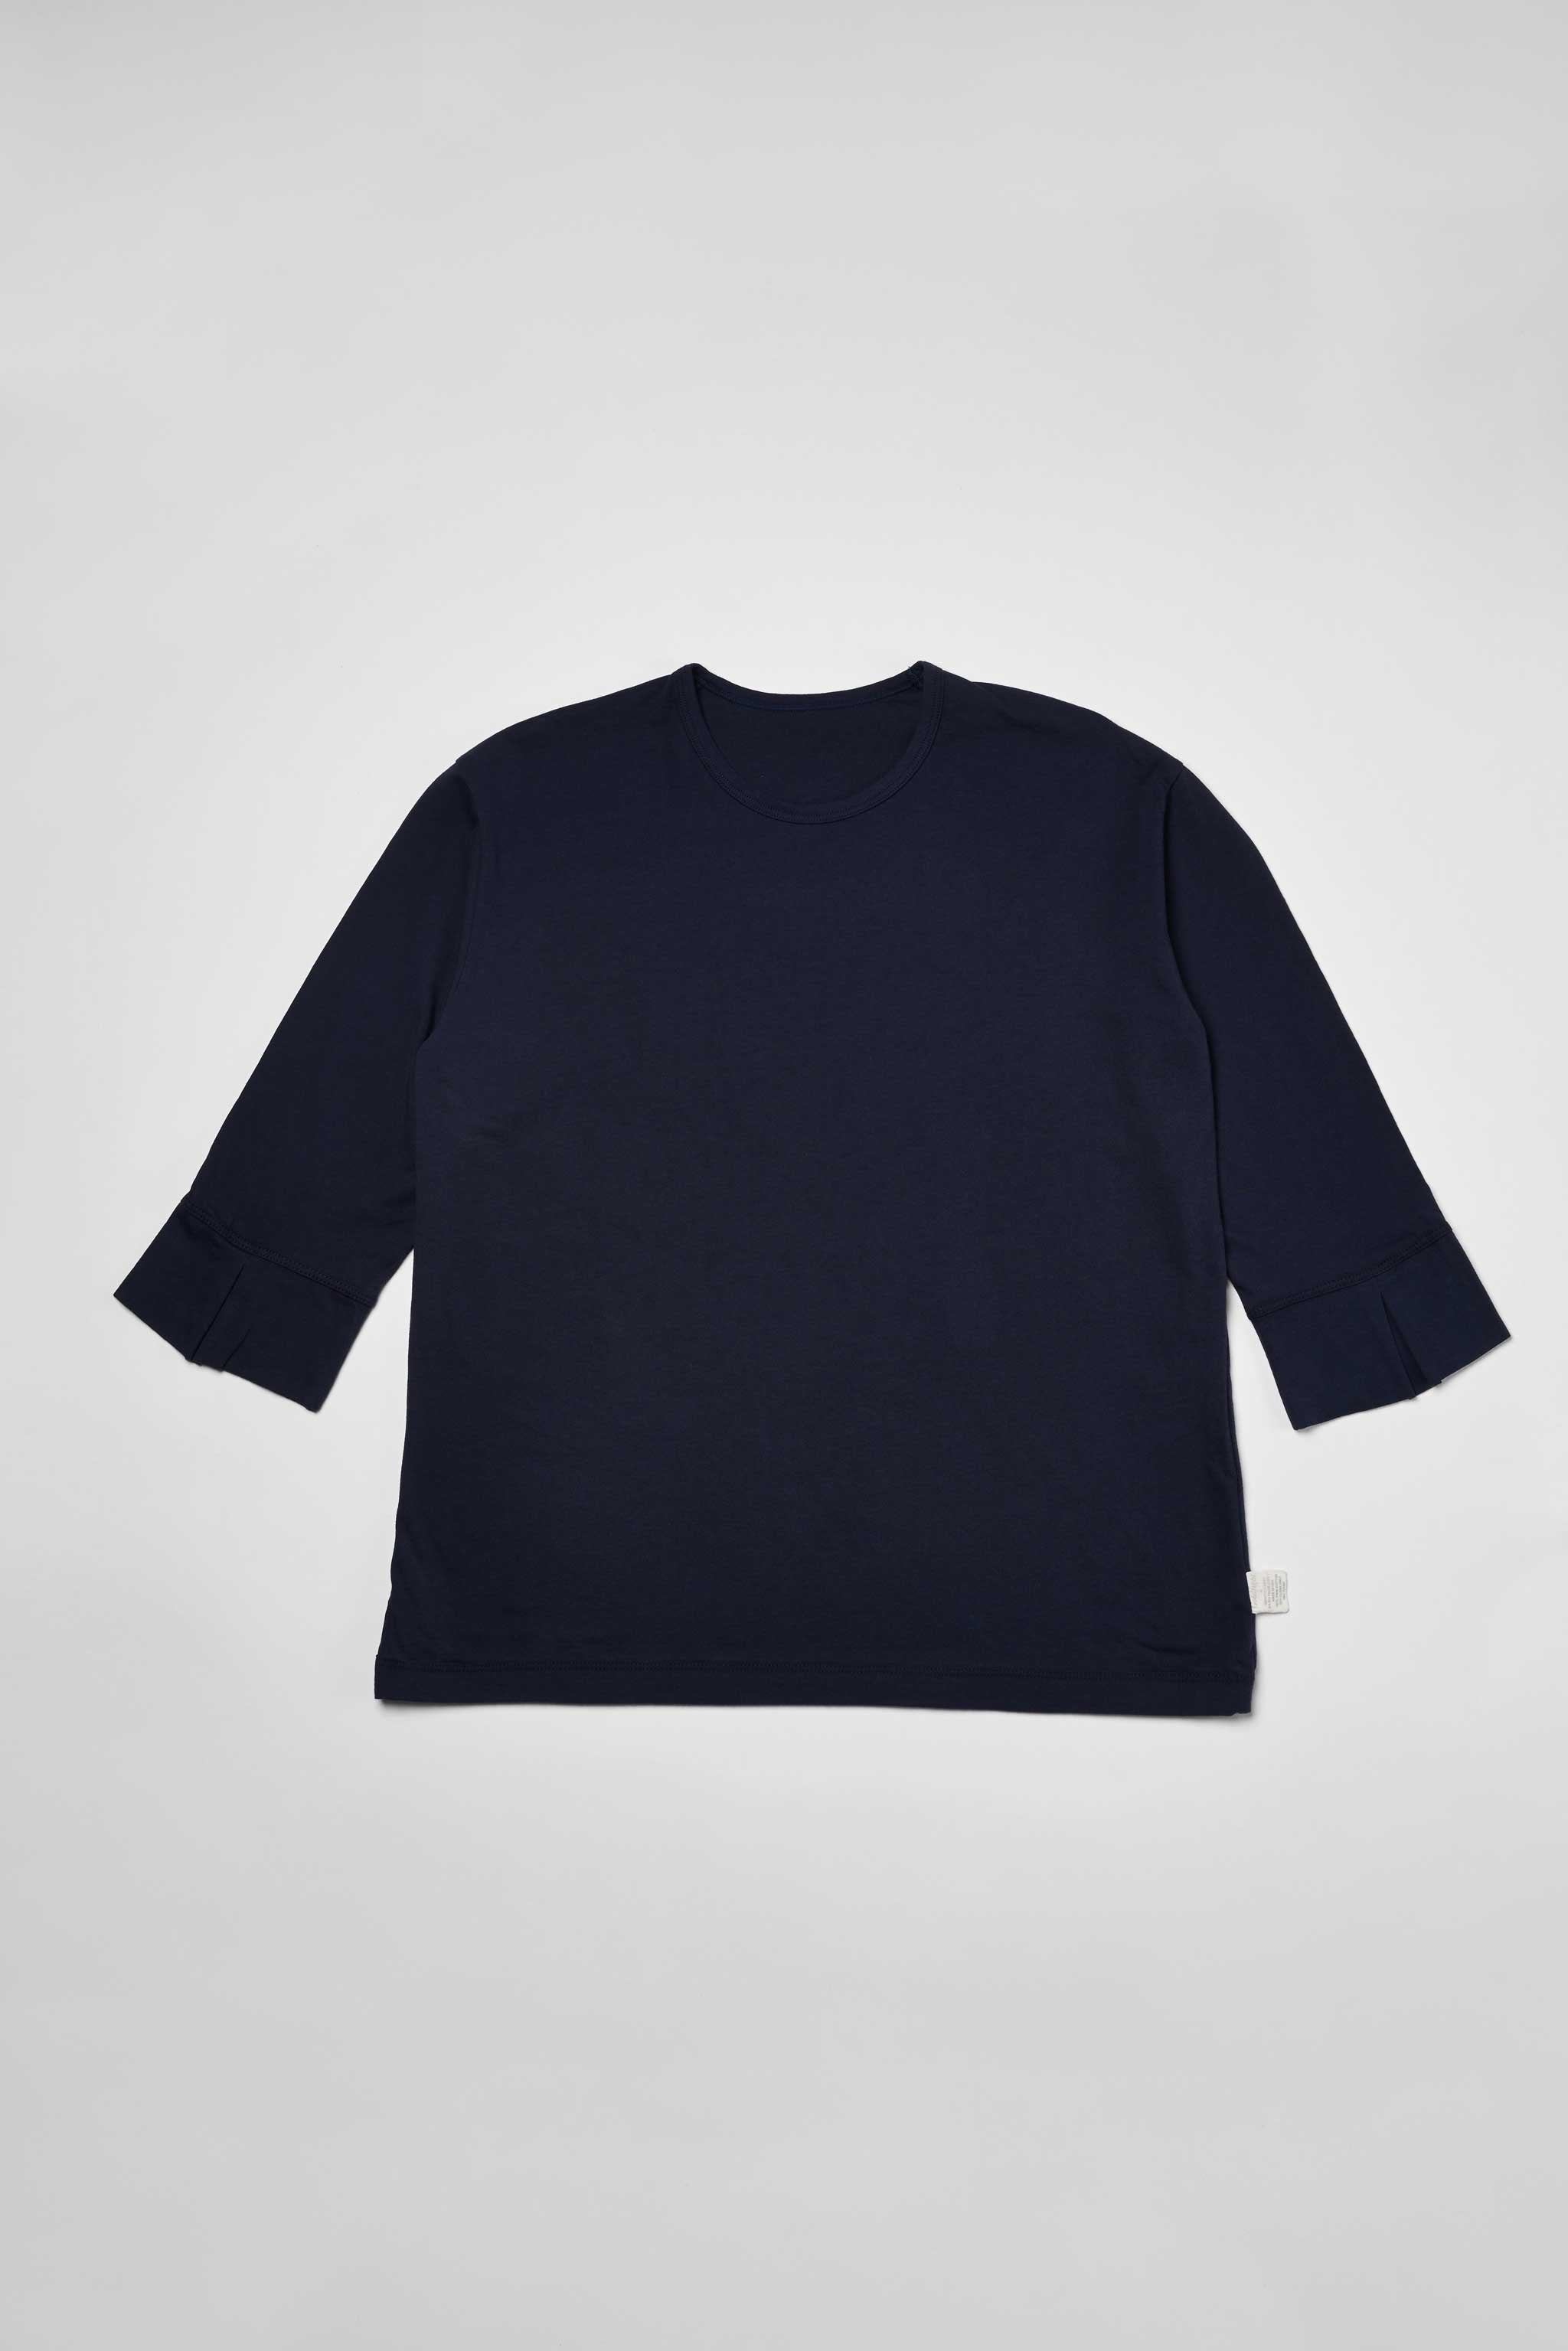 Goodfight 3-4 Sleeve False Cuff Tee Navy